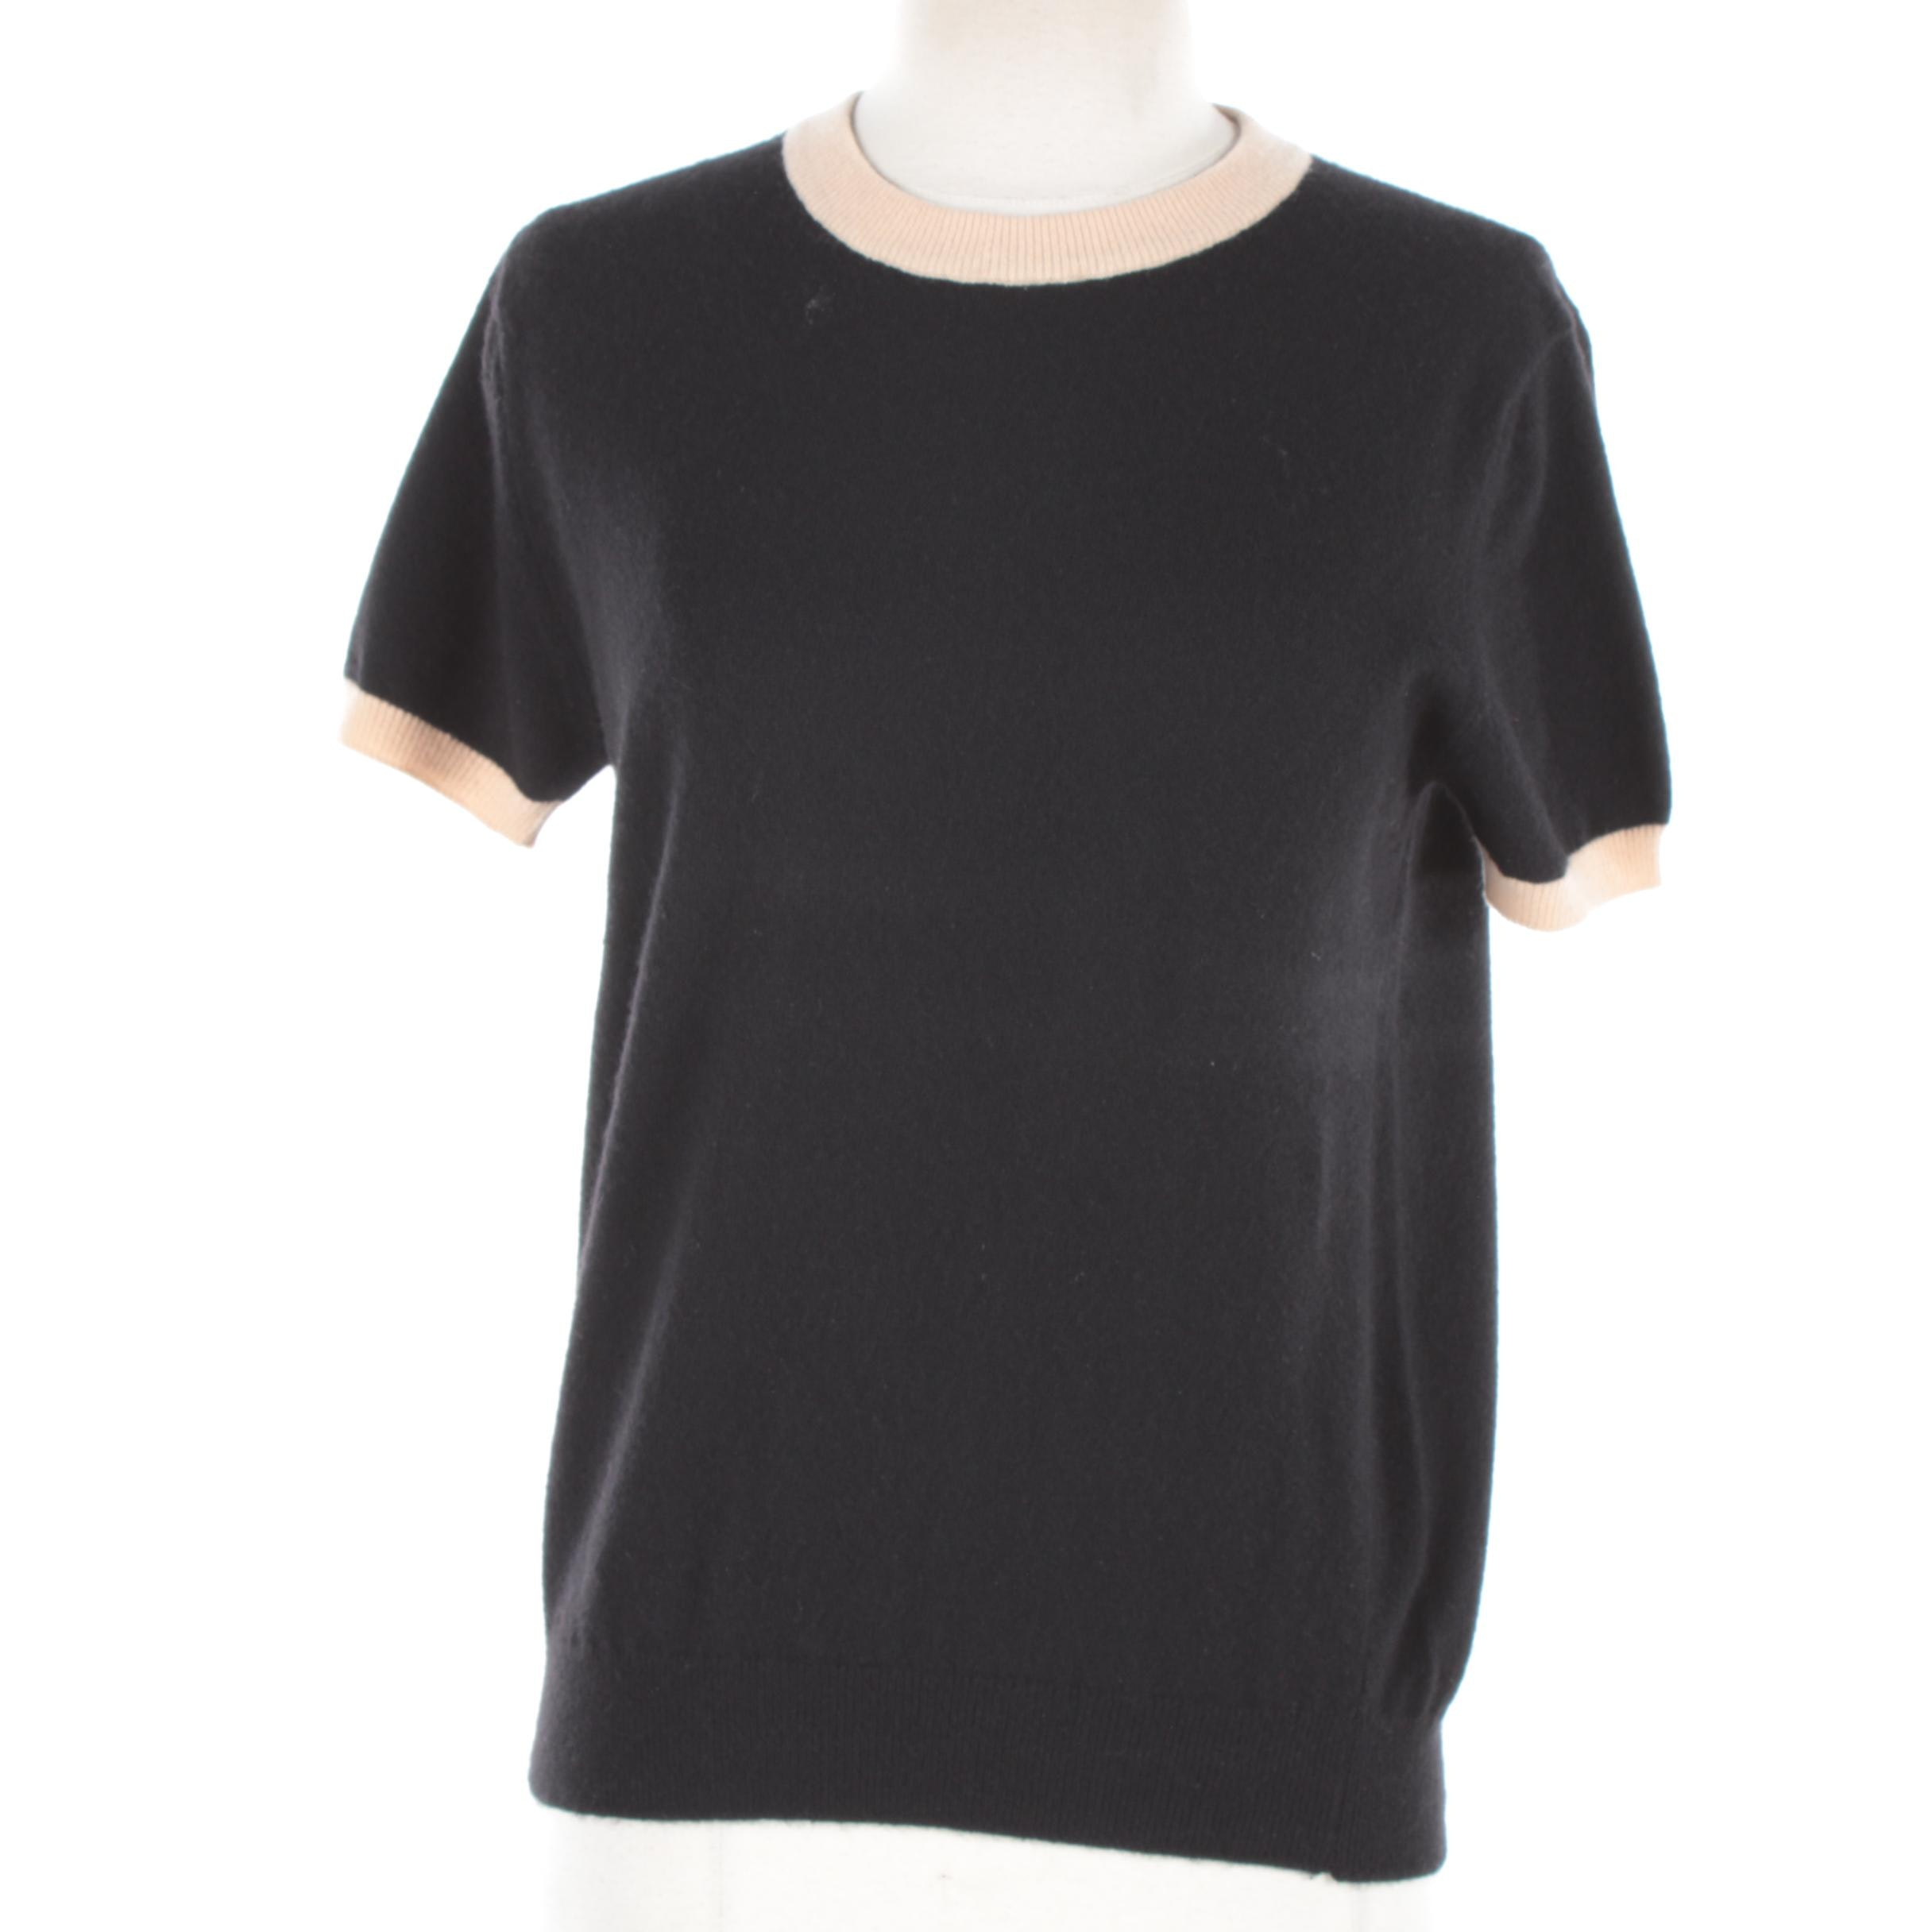 Chanel Cashmere Blend Short Sleeve Top